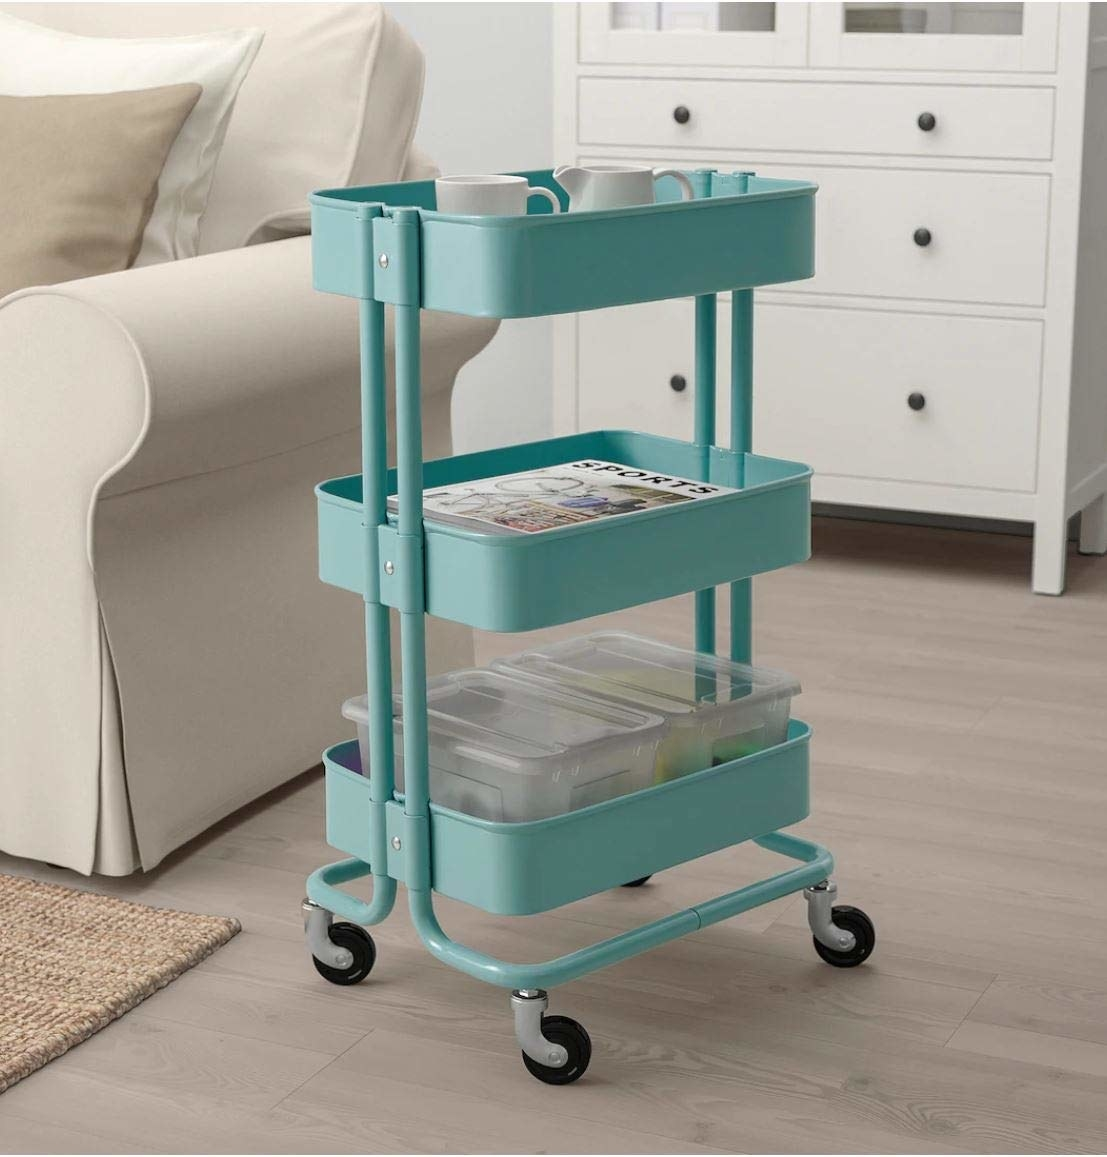 Storage trolley in a room